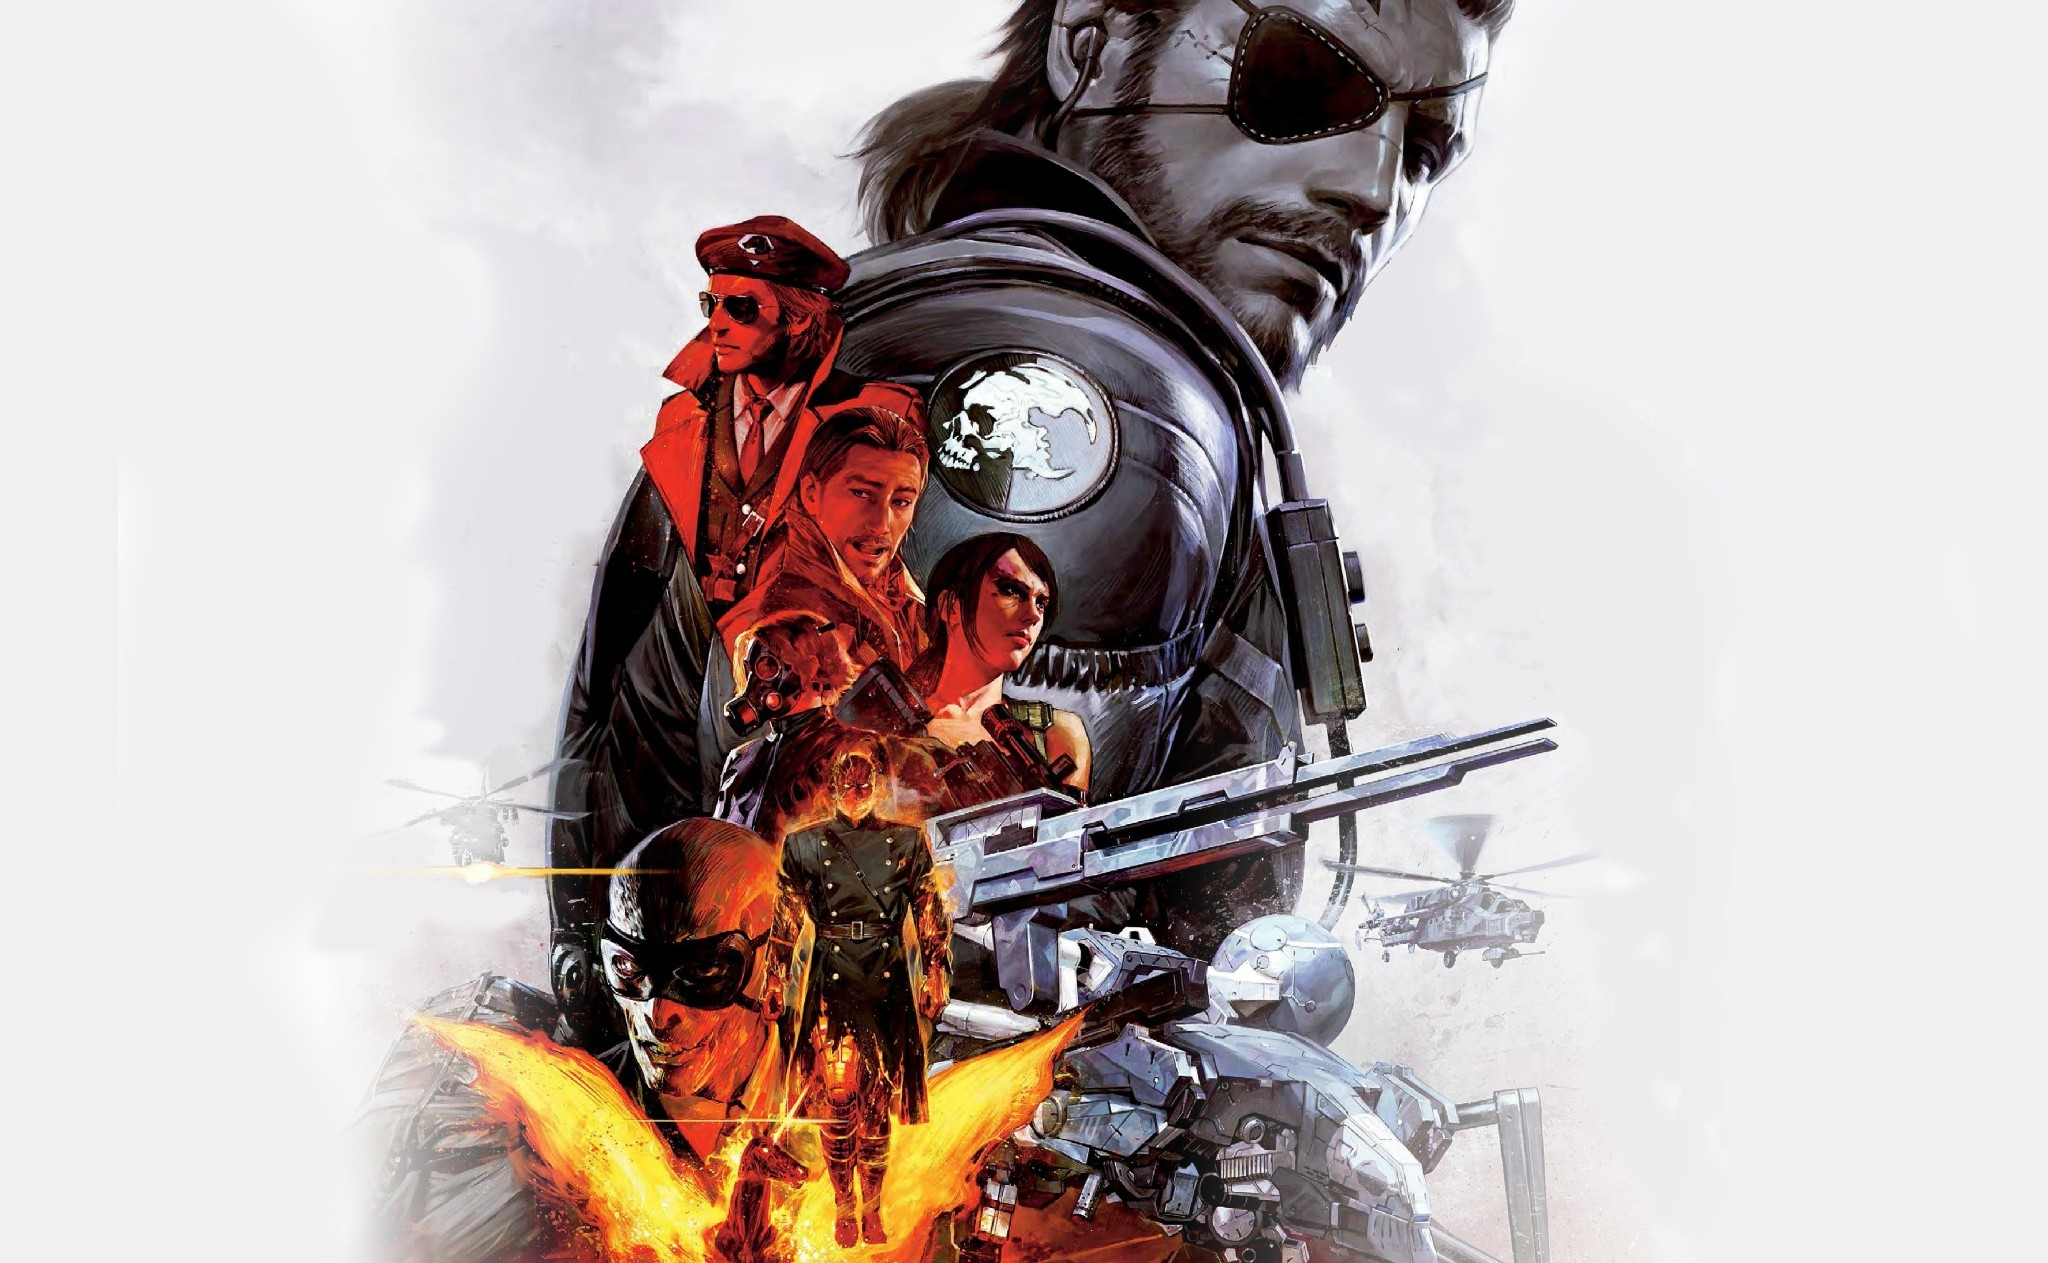 Video Game – Metal Gear Solid V: The Phantom Pain Solid Snake Wallpaper